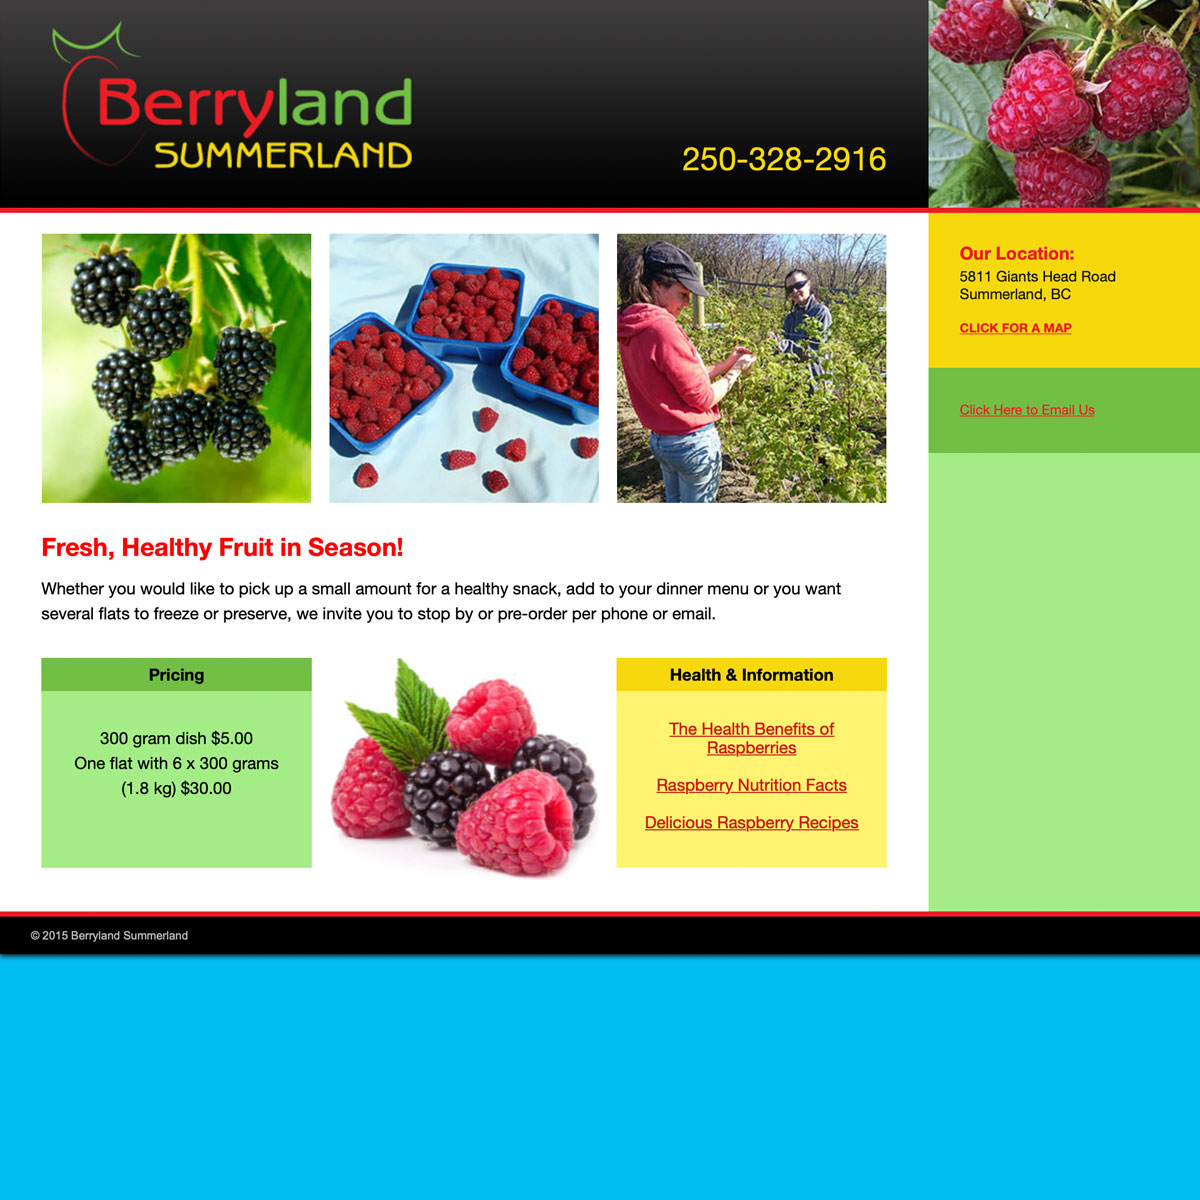 Berryland Summerland website